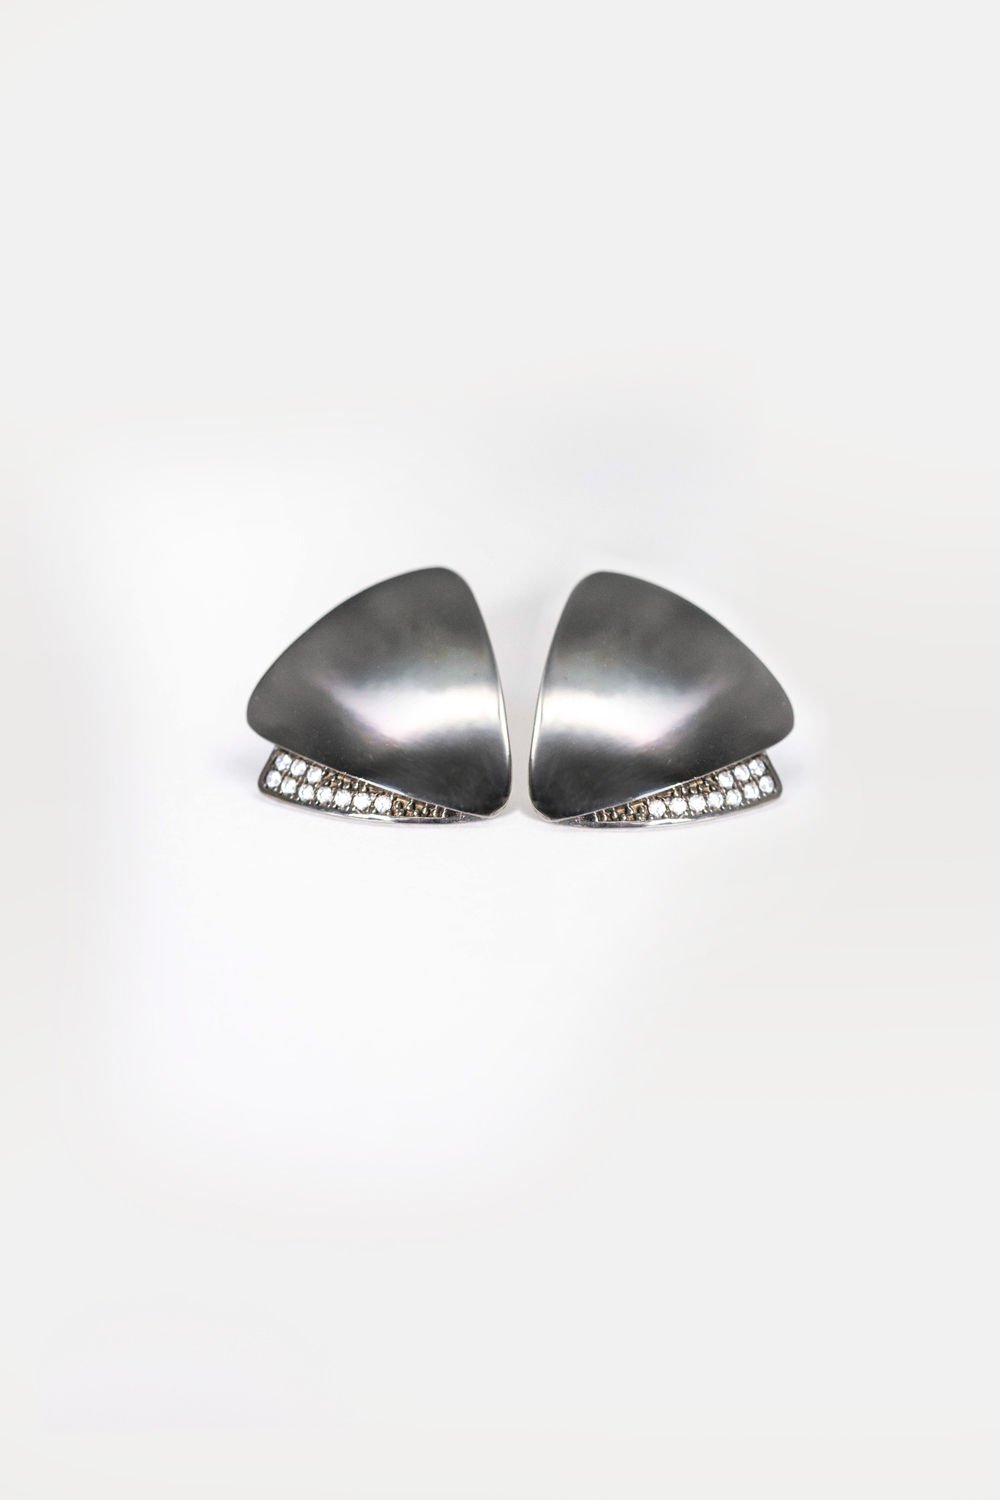 black rhodium plated earrings, triangle shaped earrings, sterling silver, silver 925, white stone